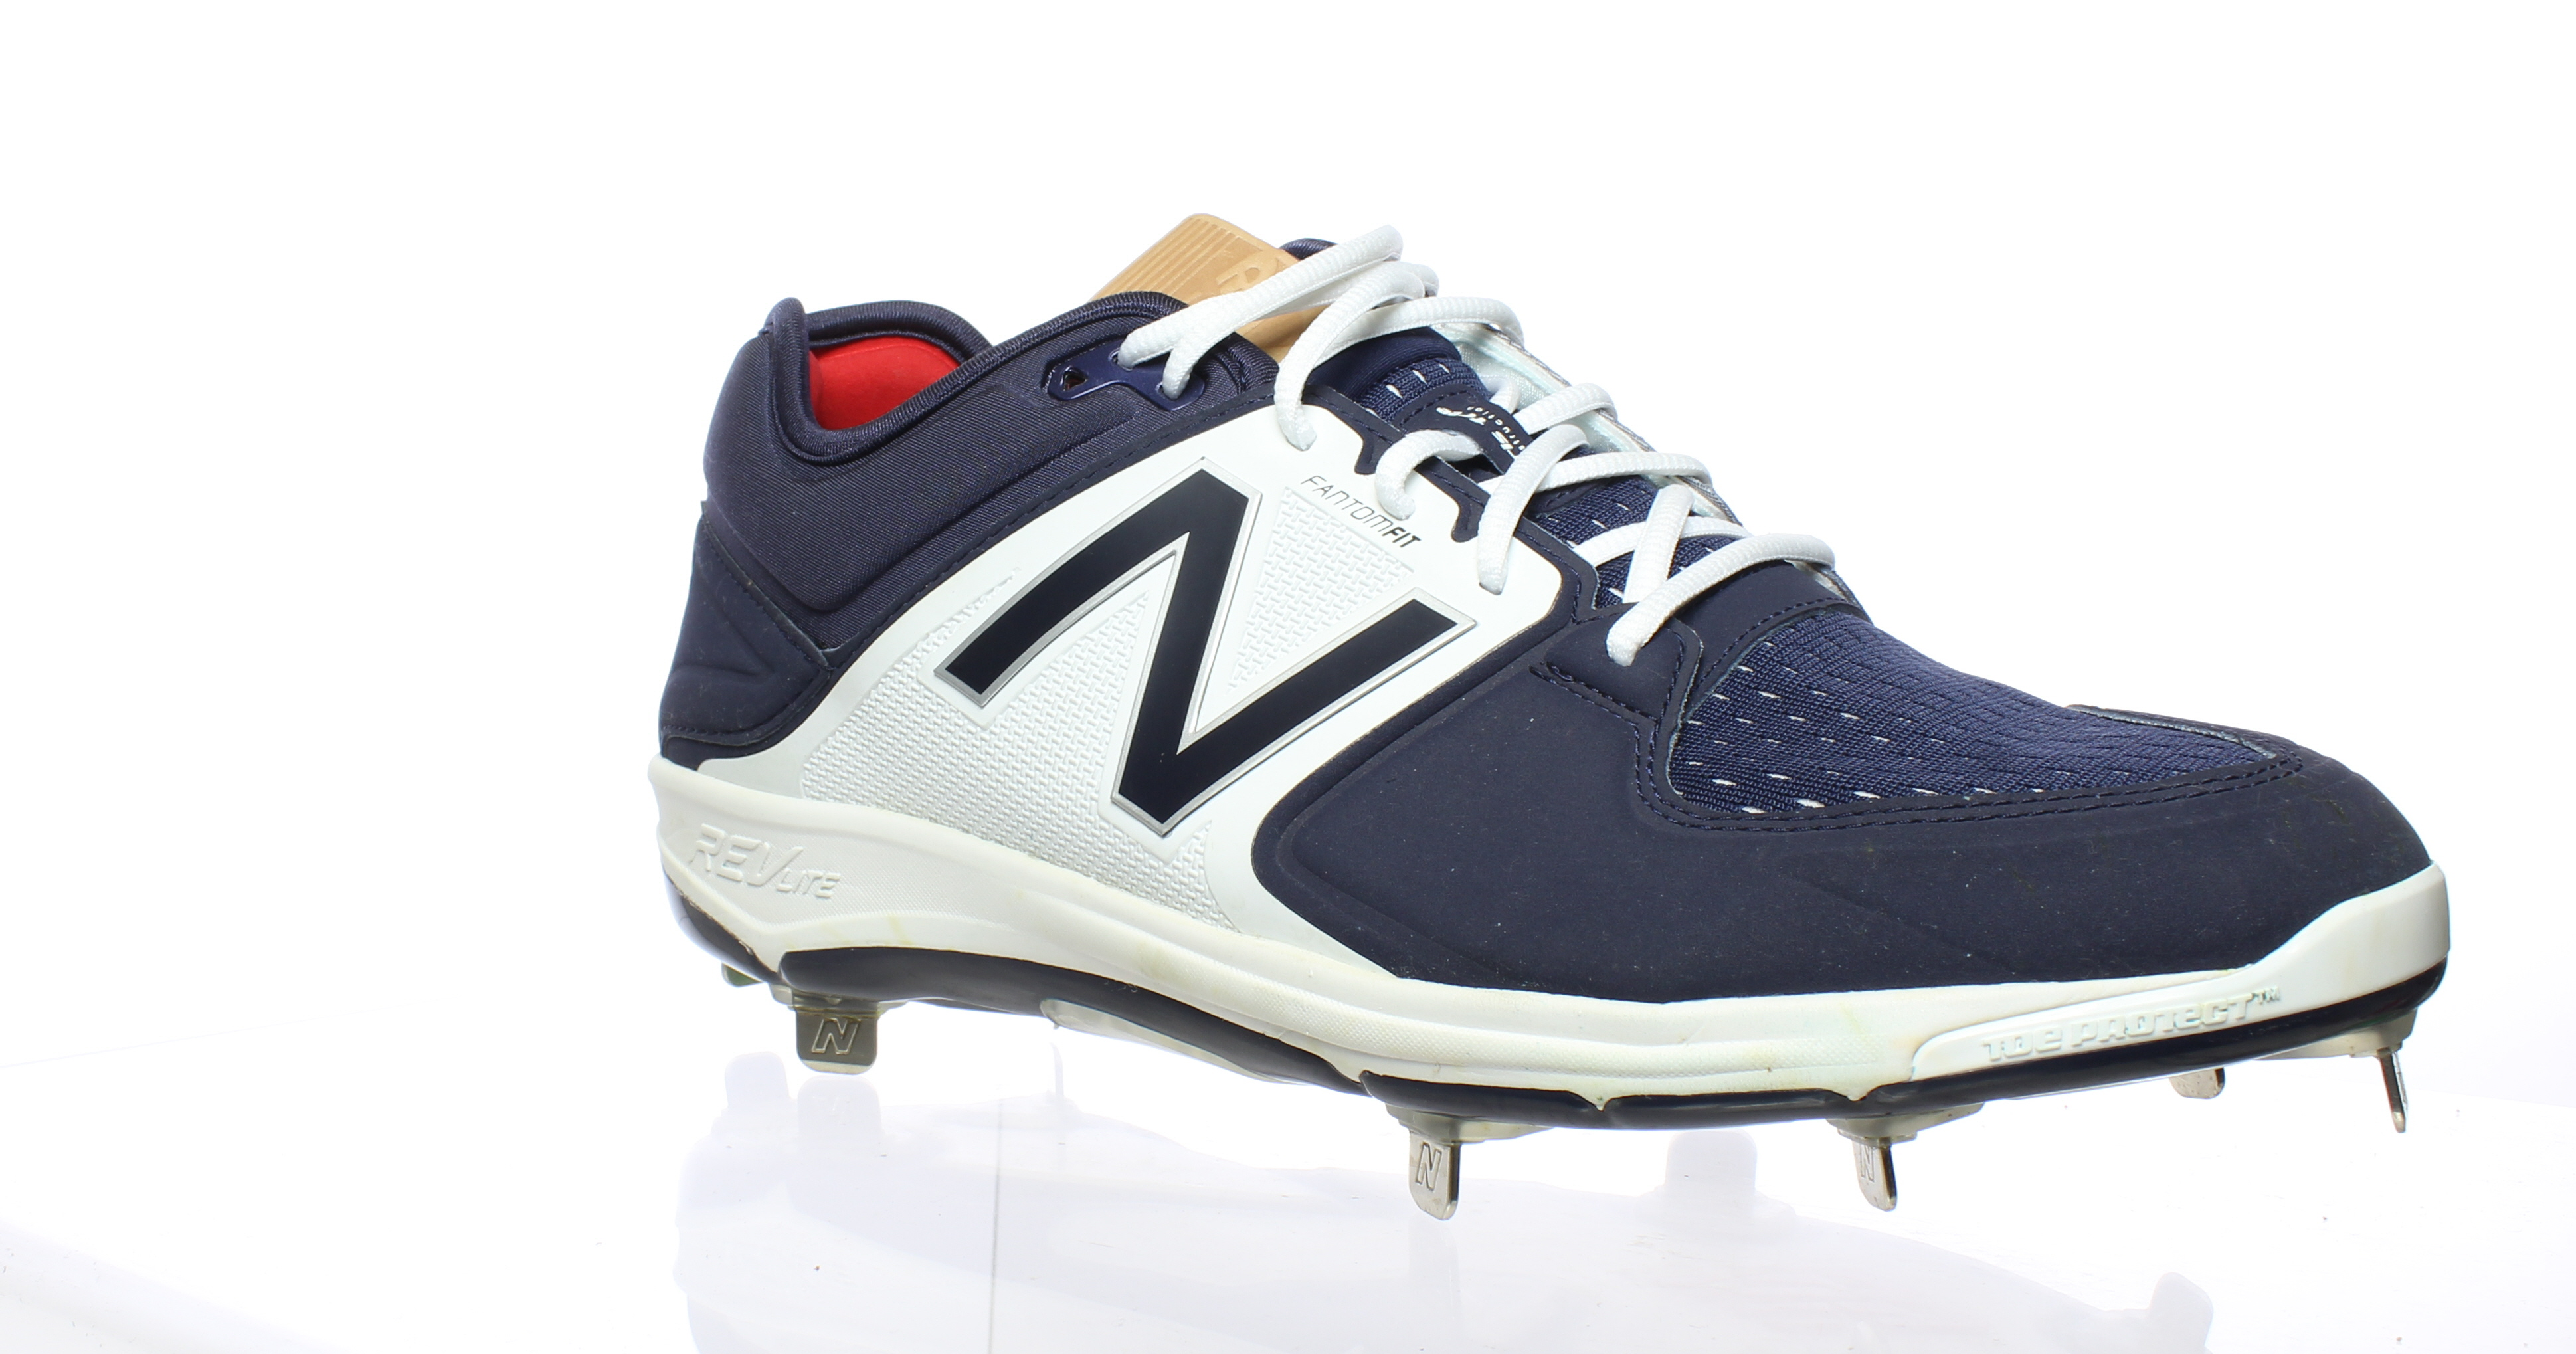 2e2e077e Details about New Balance Mens L3000tn3 Navy/White Baseball Cleats Size 13  (392712)